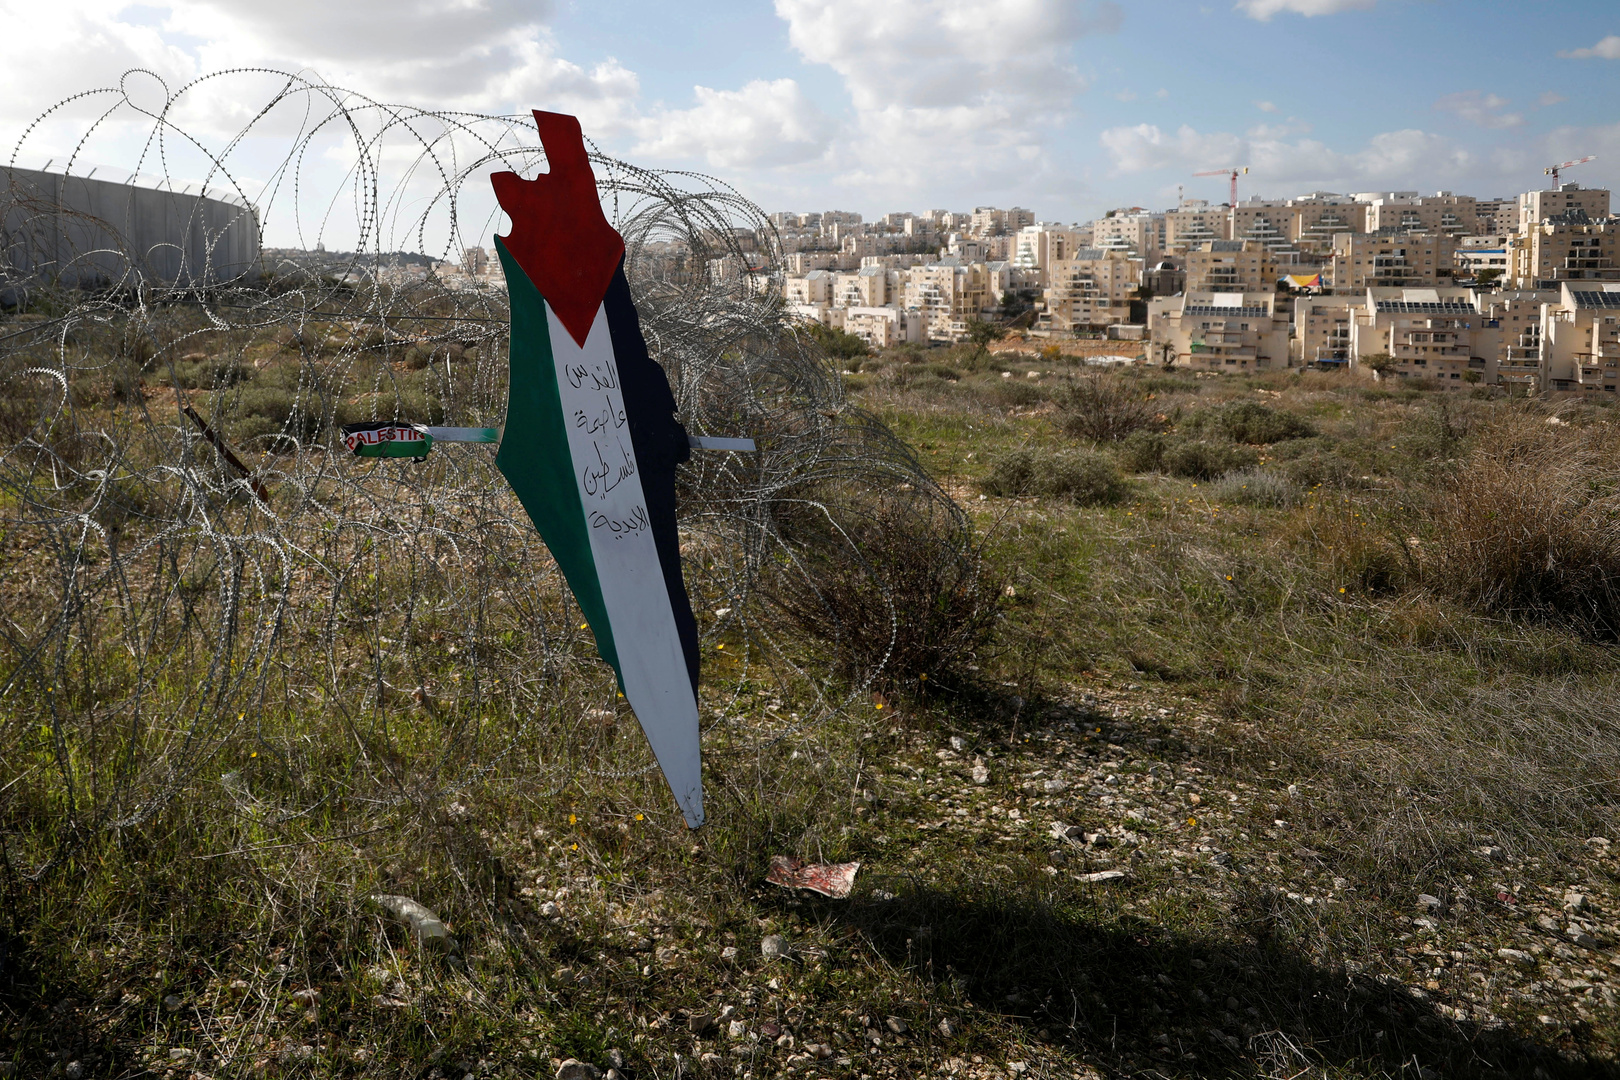 Media: An influential Jewish fund is about to approve the purchase of Palestinian land to expand West Bank settlements